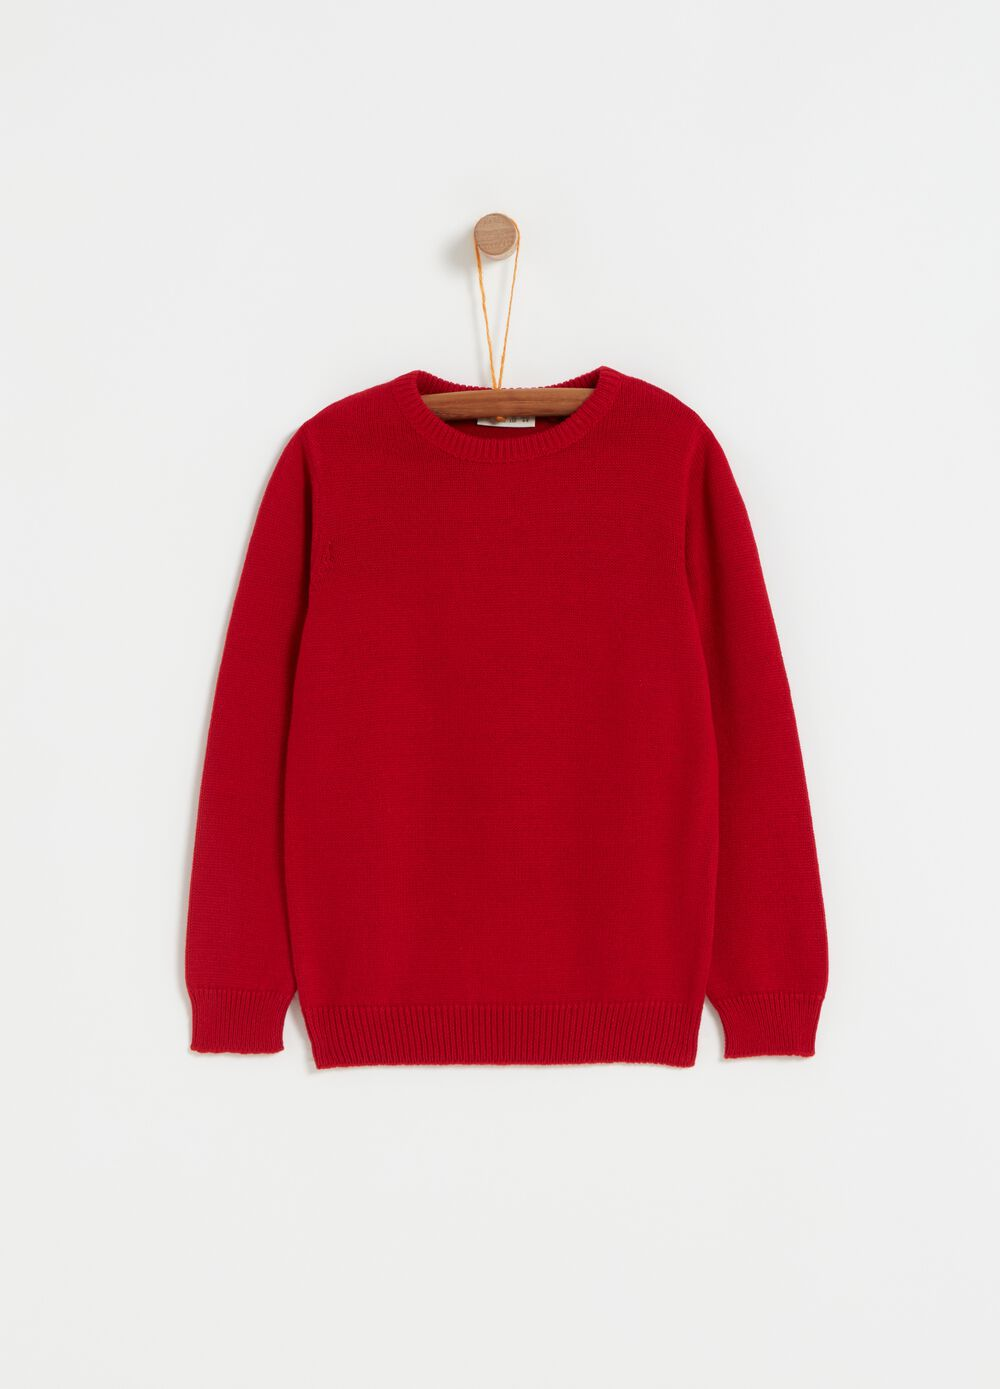 100% cotton knitted top with round neck